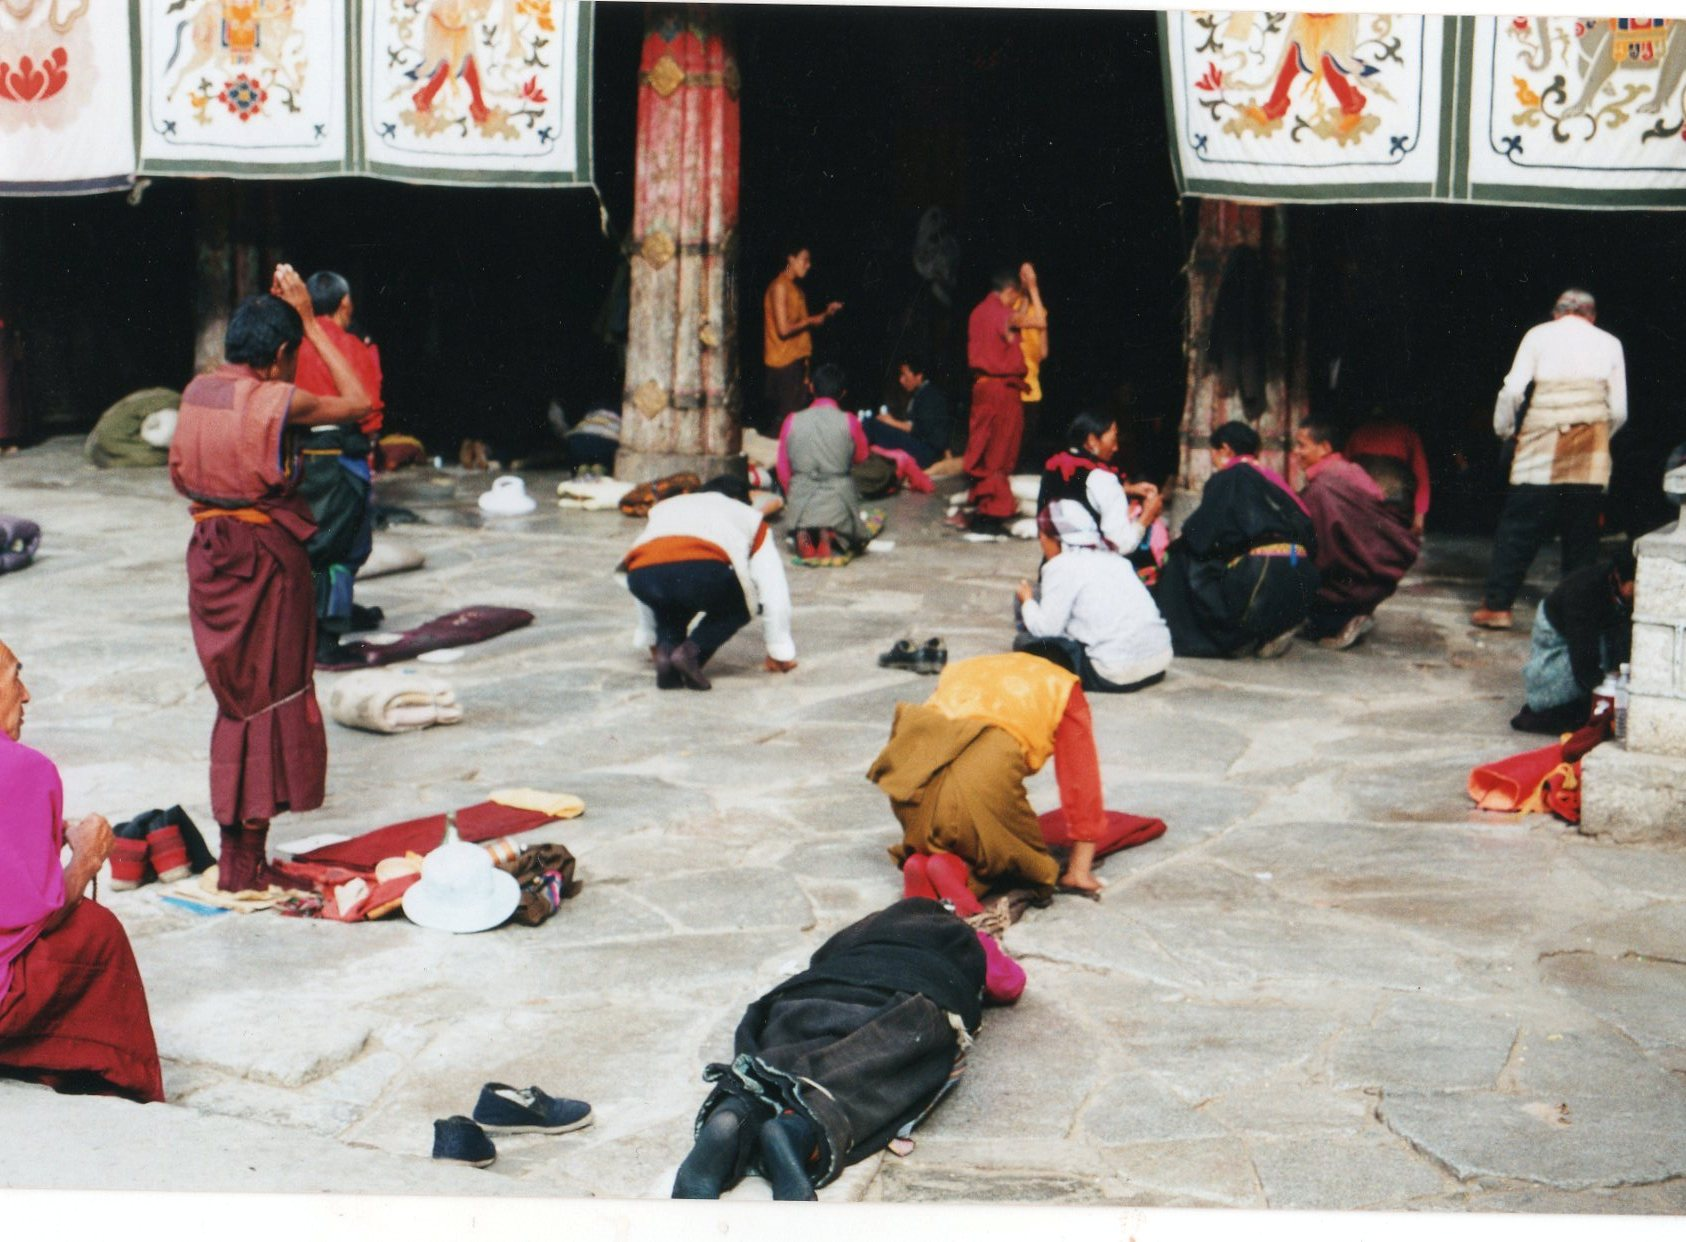 China Tibet, Barkhor Kora, Lhasa, Prostrating at the Jokhang, Walkopedia